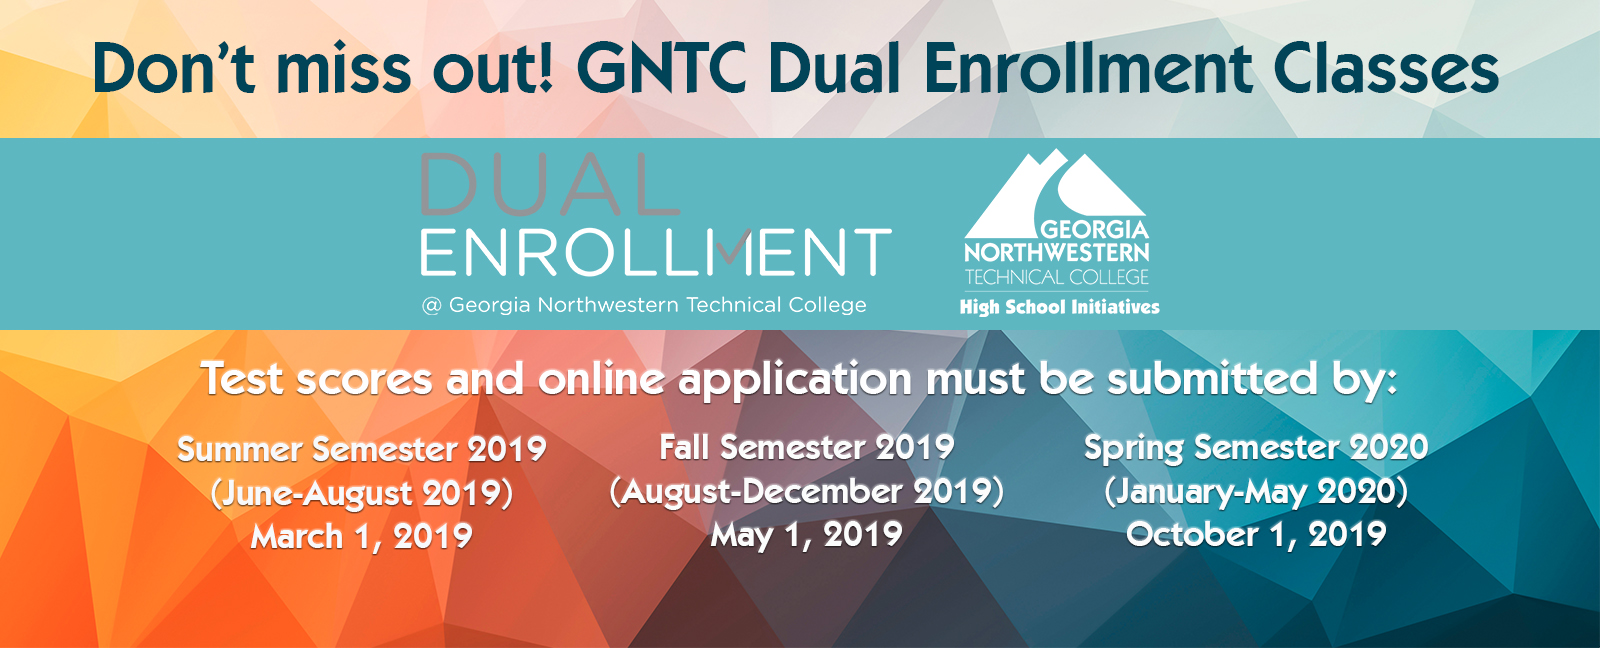 Don't miss out! GNTC Dual Enrollment Classes Test Scores and online application must be submitted by: March 1, 2019 for Summer Semester 2019 (June-August 2019), May 1, 2019 for Fall Semester 2019 (August-December 2019), October 1, 2019 for Spring Sem